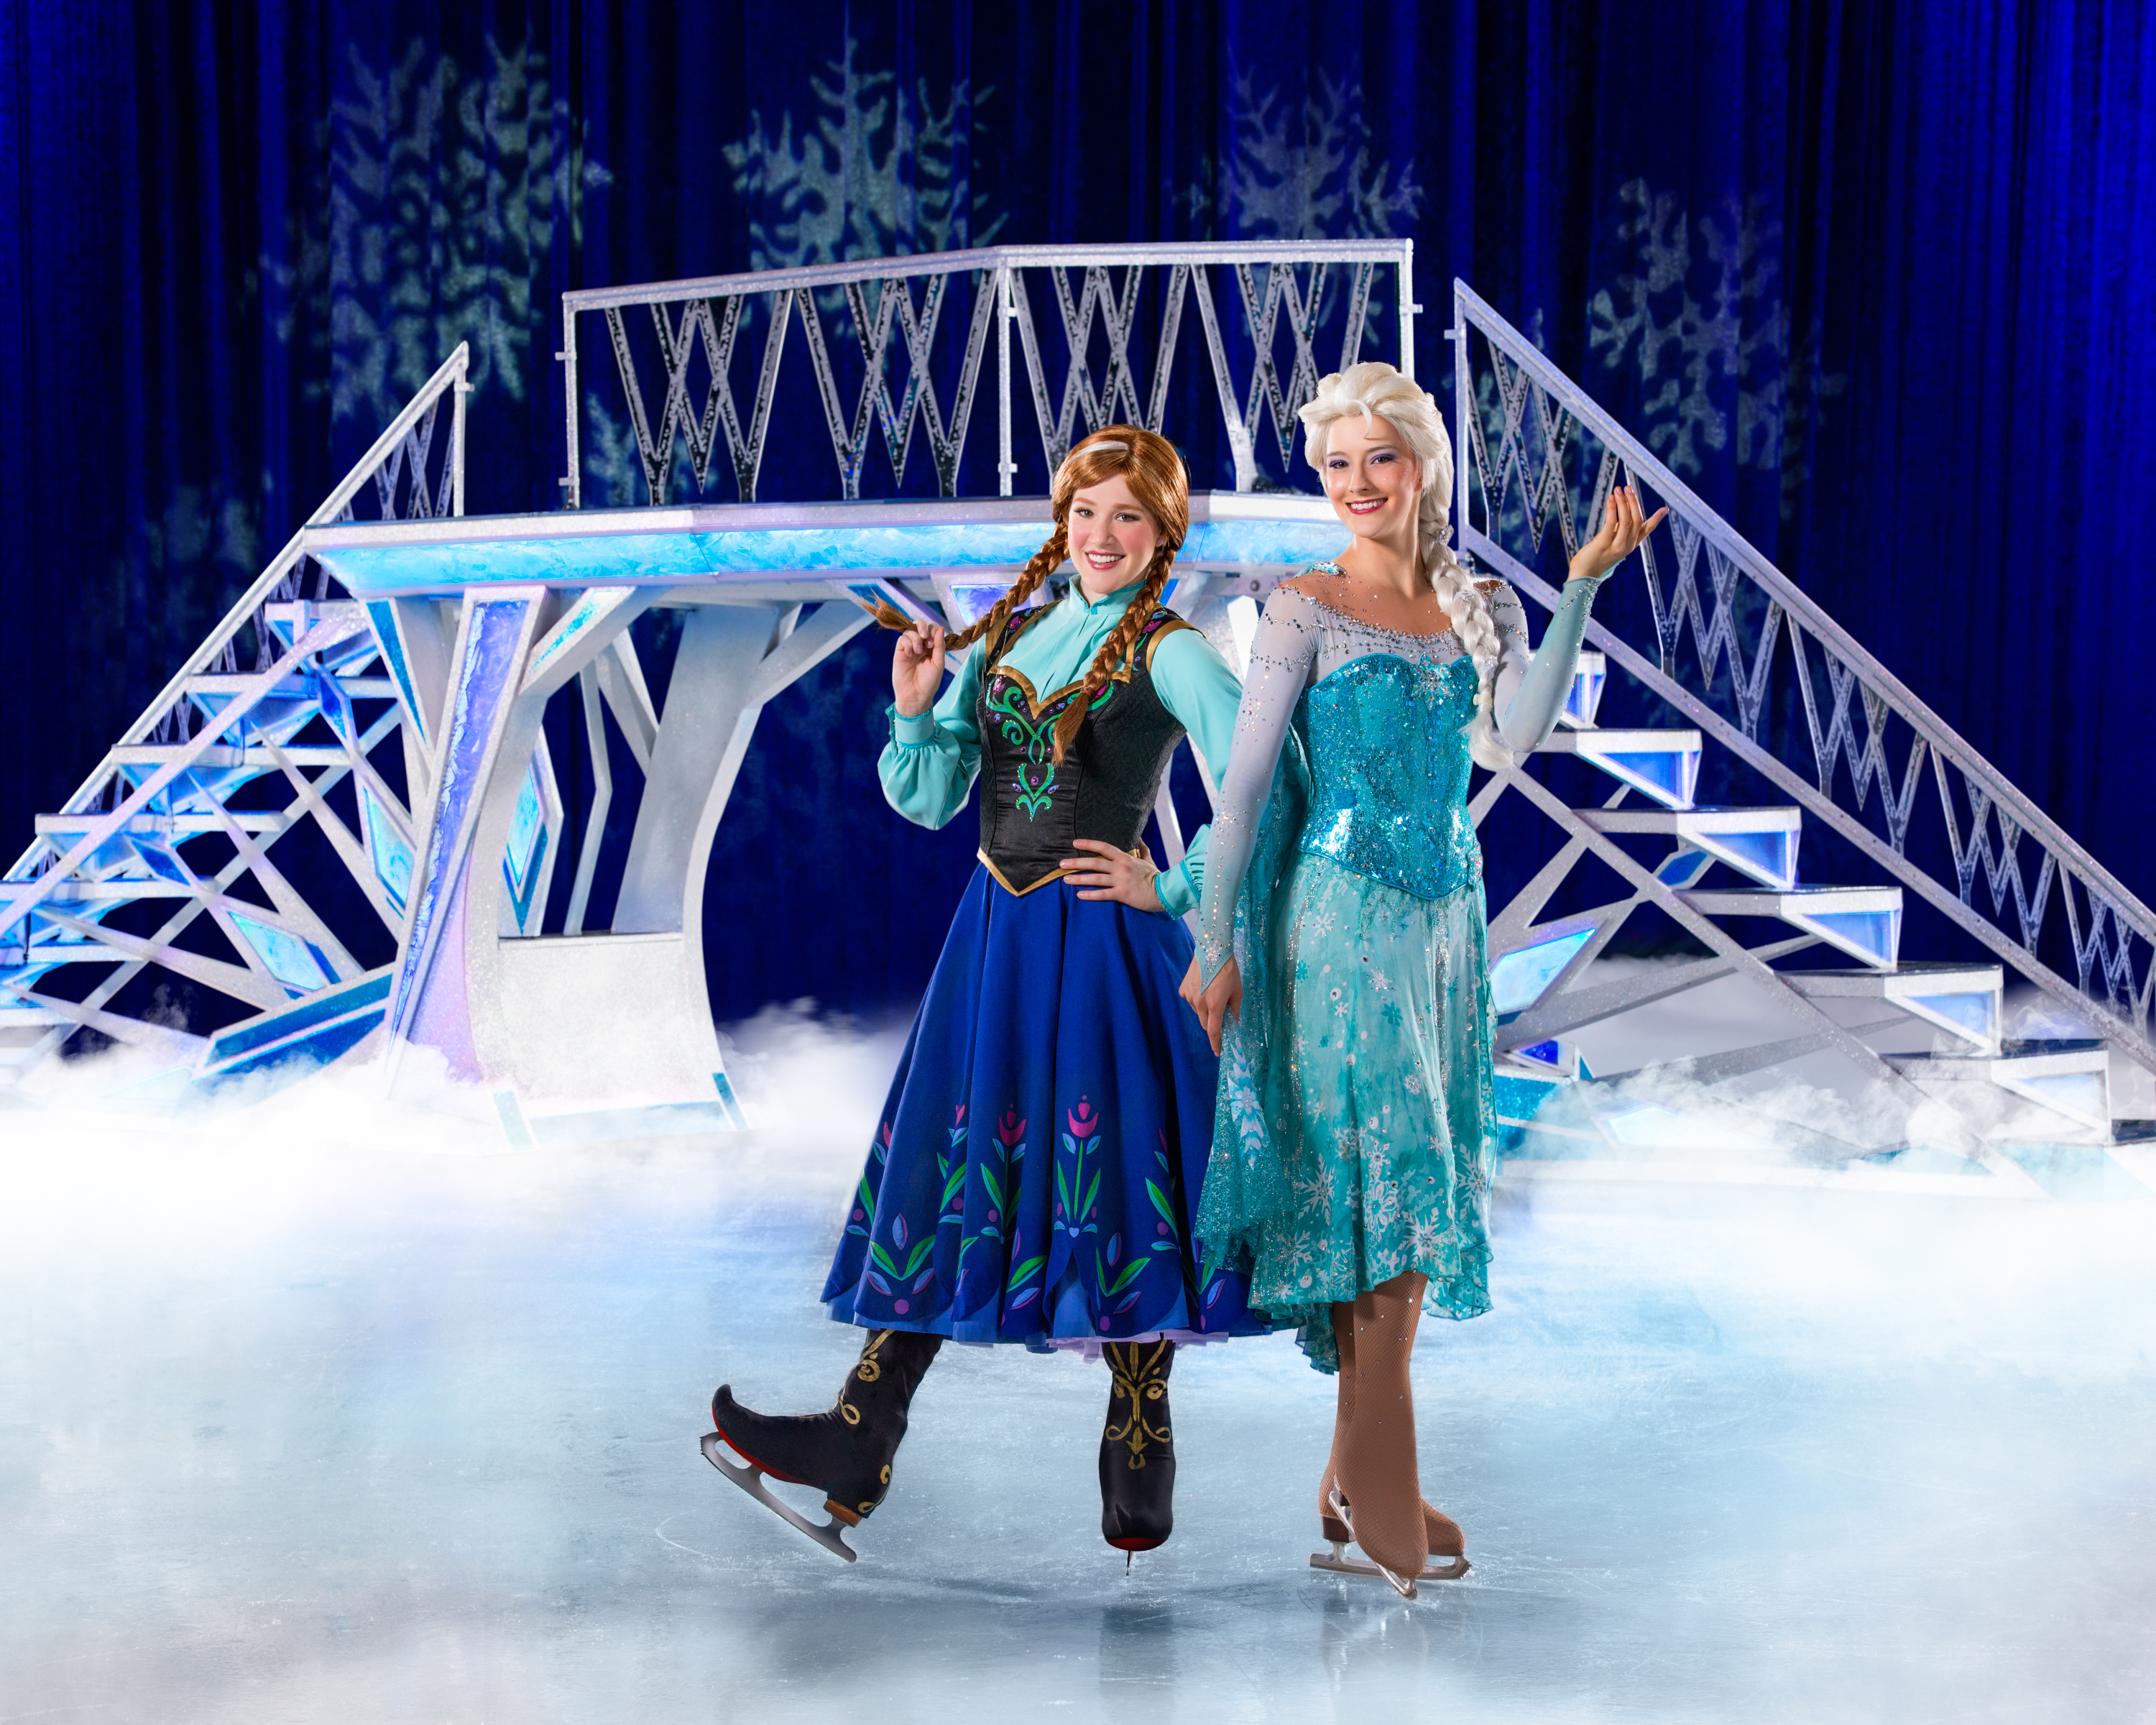 Giveaway of a family package of 4 tickets disney on ice Are we going to get snow this year 2016